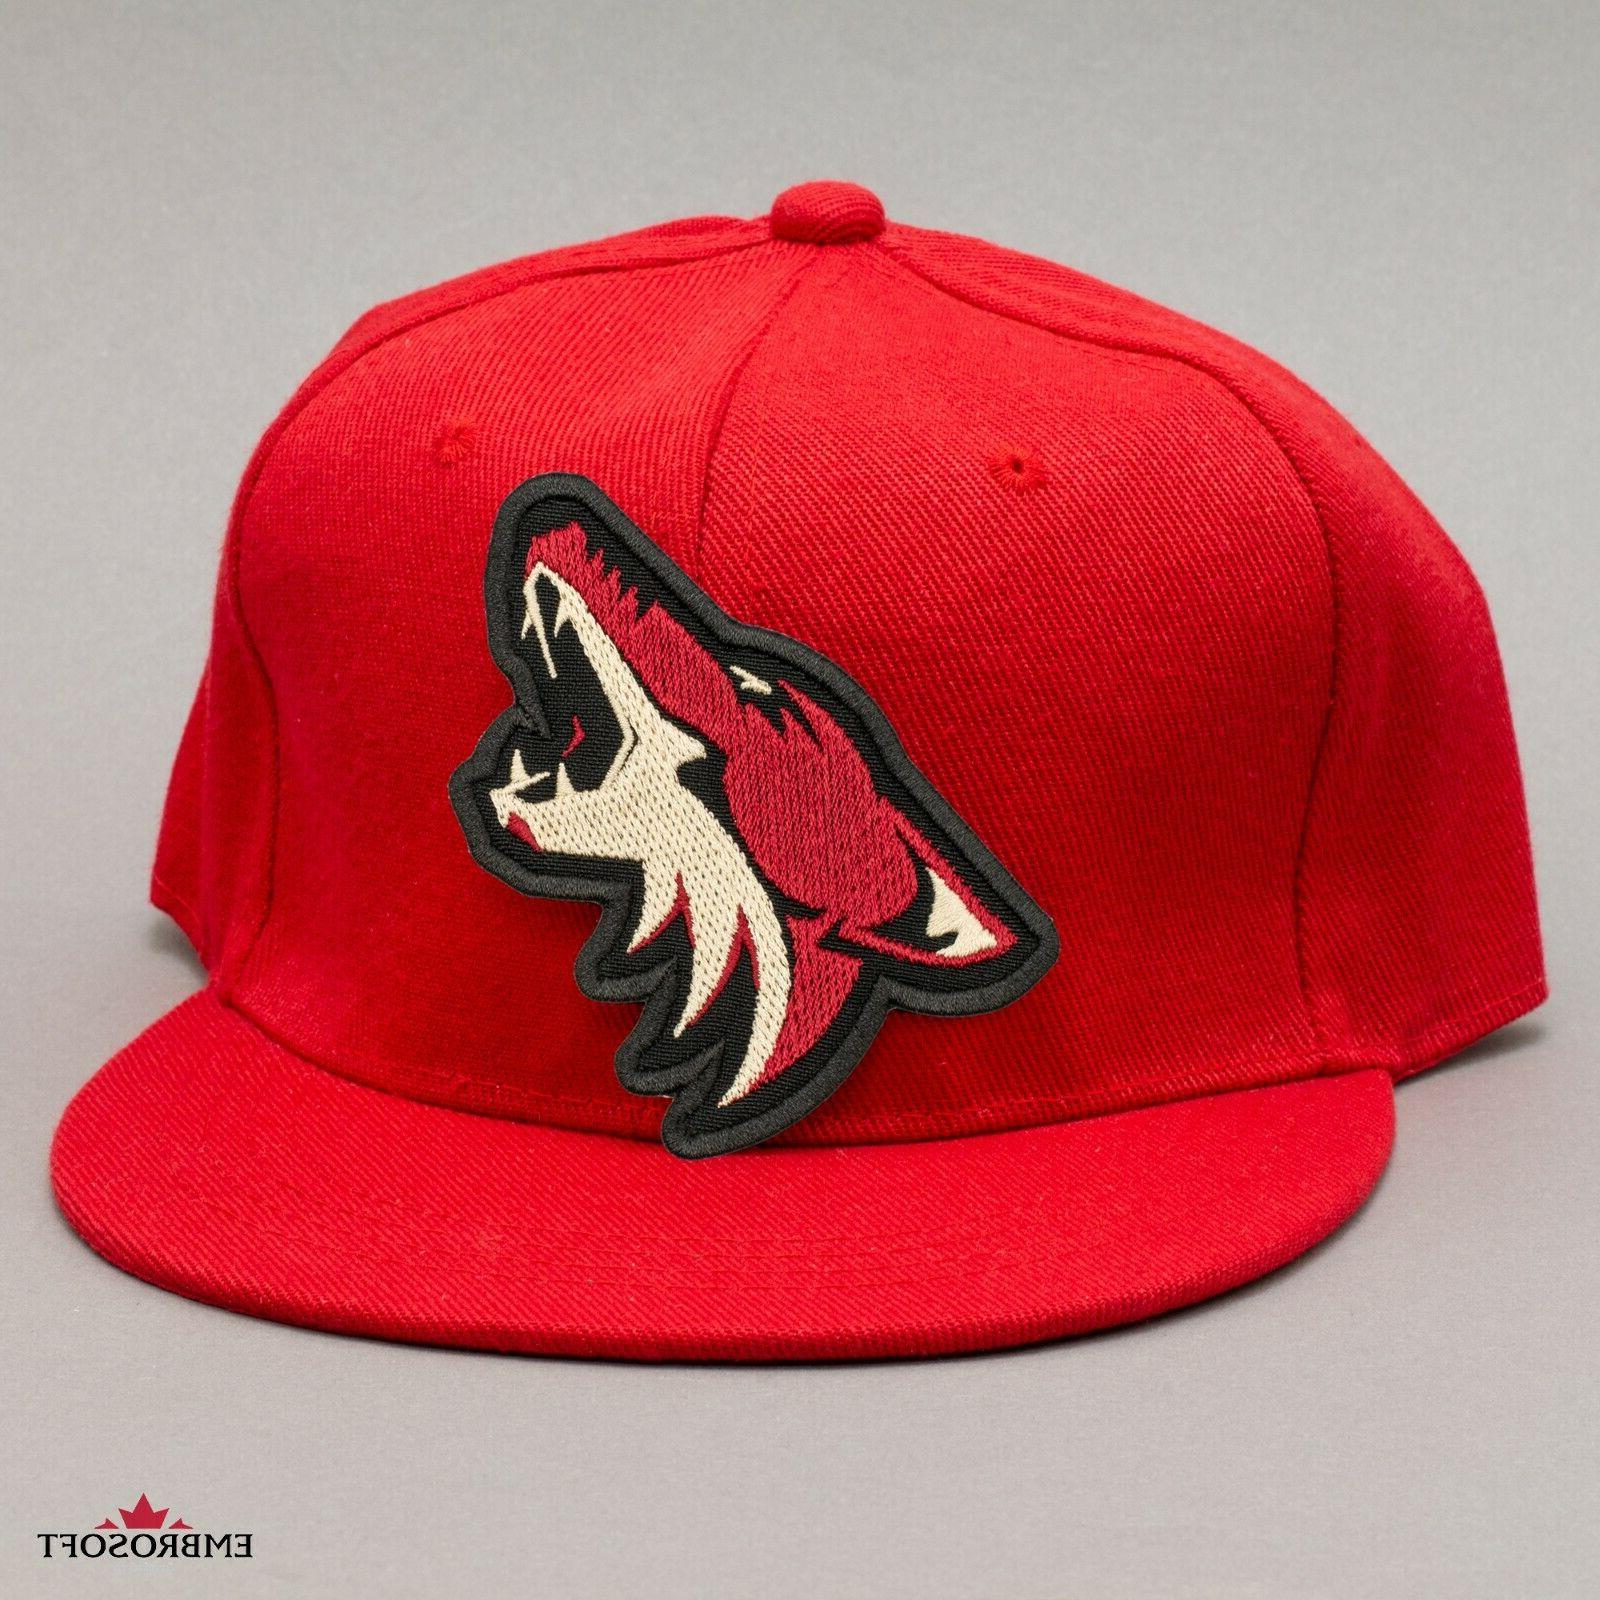 🏒Arizona Coyotes Patch, NHL Sports Team Embroidered Hockey